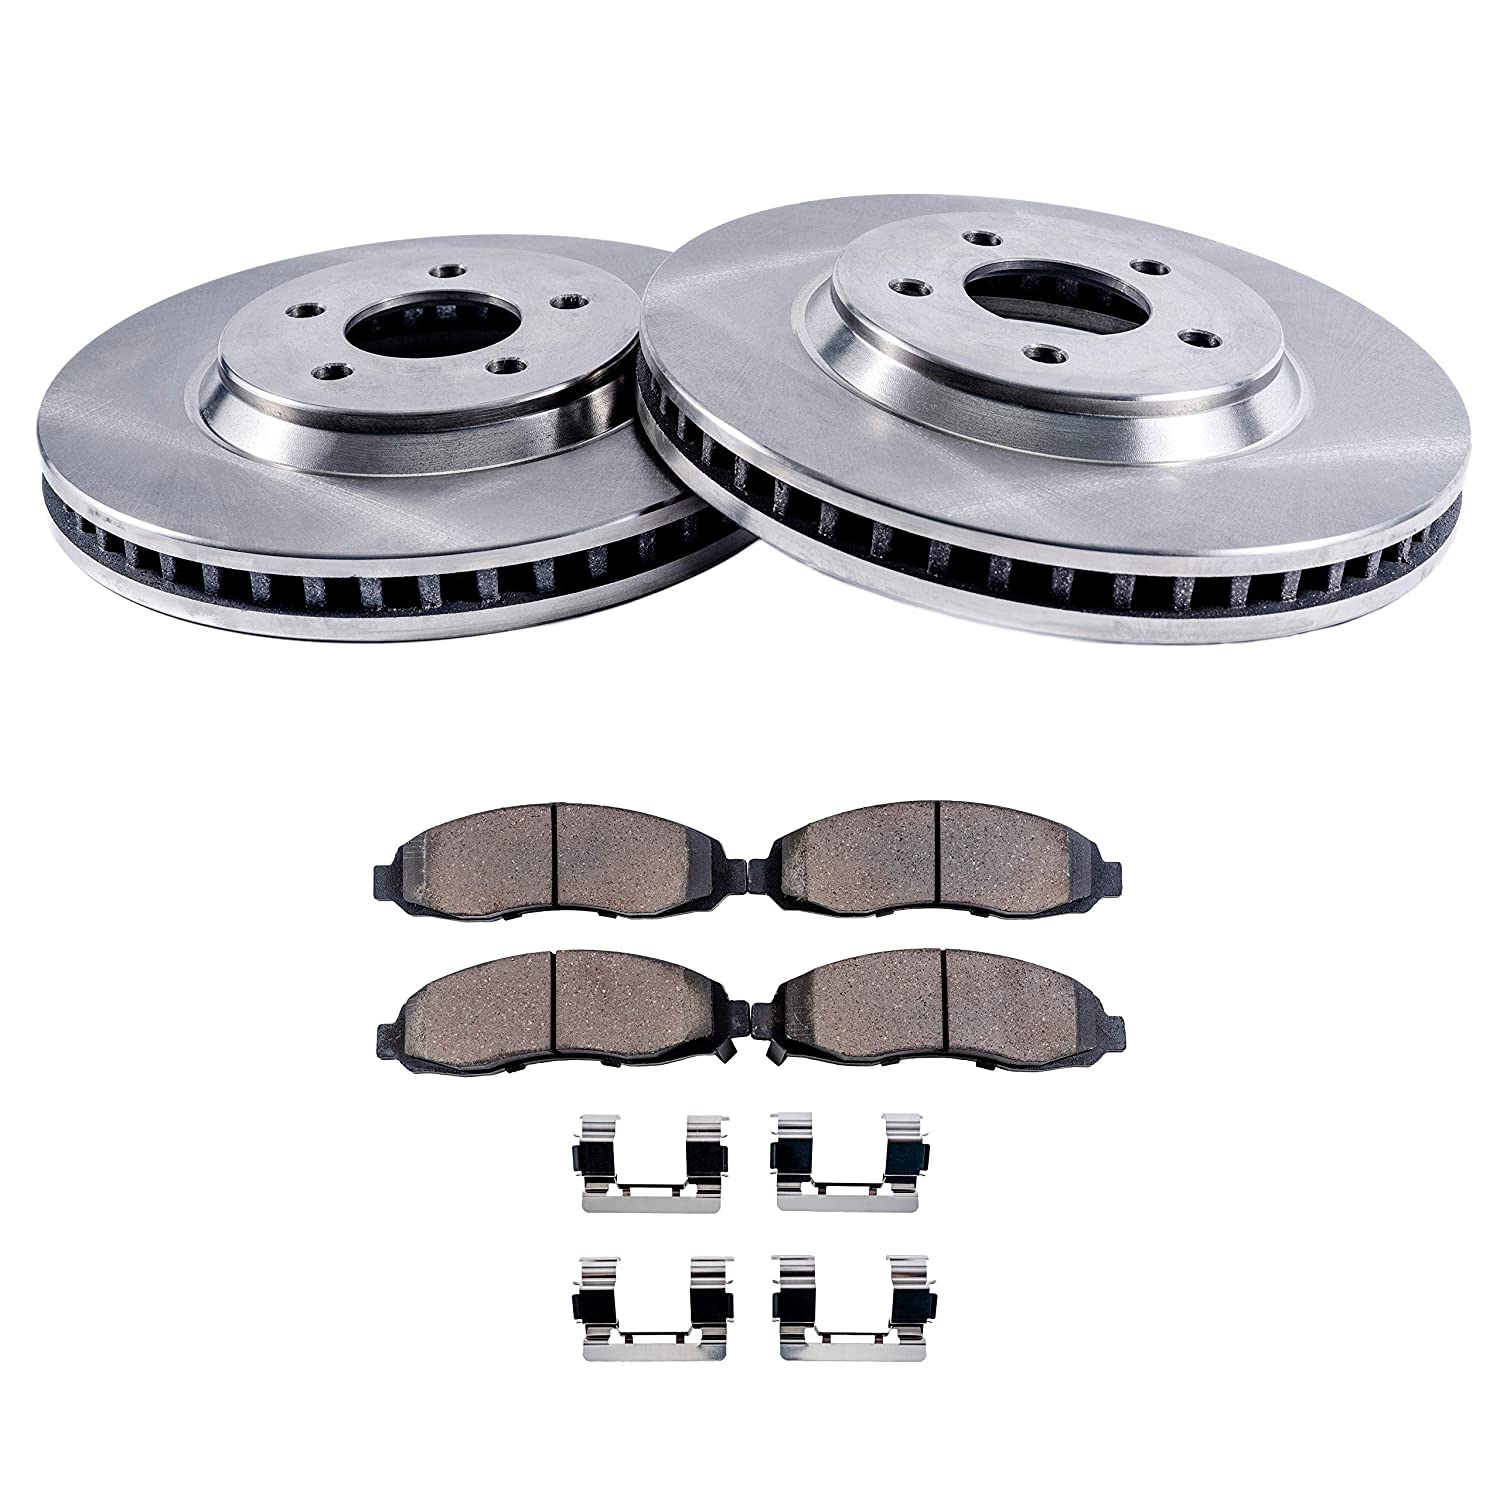 Detroit Axle - Front Disc Brake Rotors & Ceramic Pads w/Clips Hardware Kit  for 09-14 Ford Flex Standard Brakes - [11-13 Explorer No Police ] - 10-14